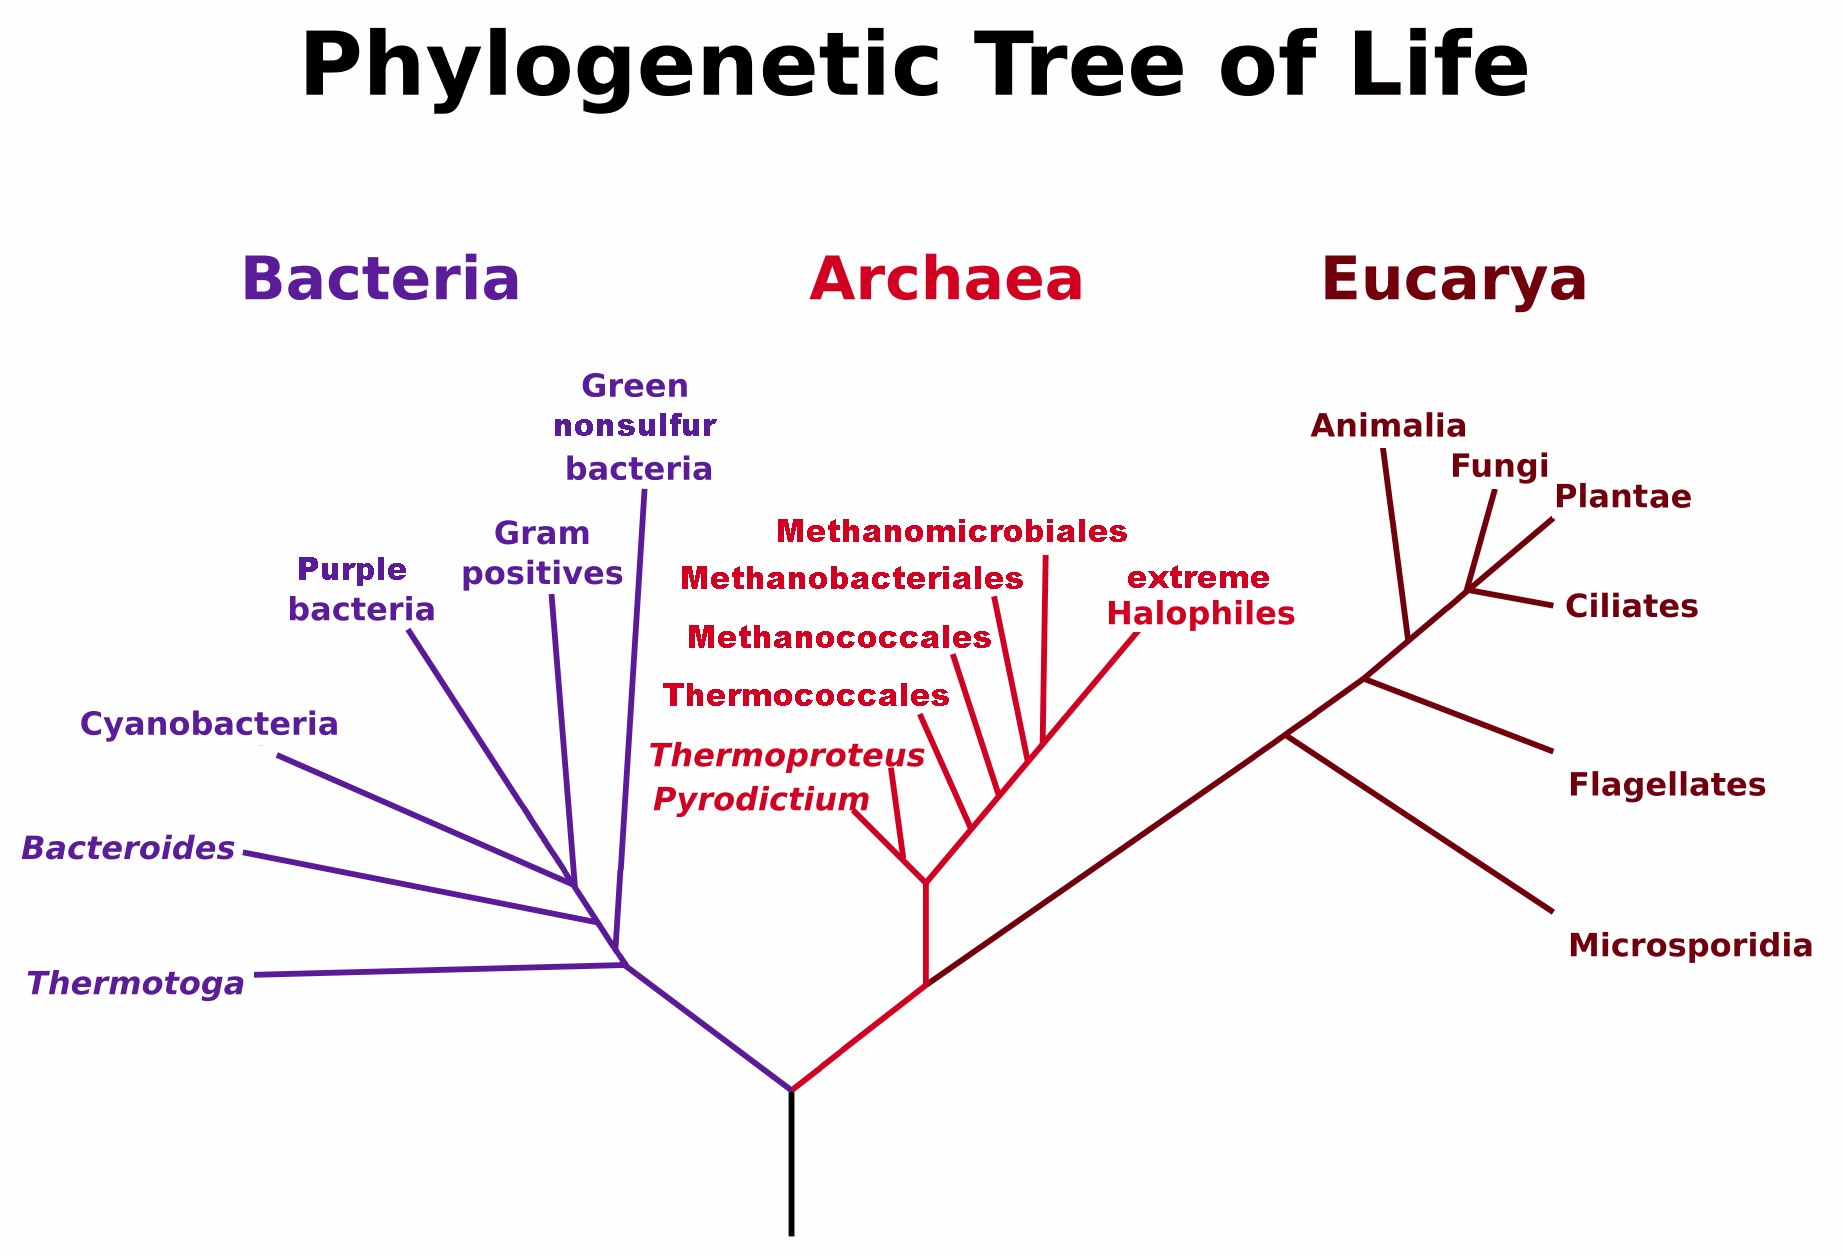 PhylogeneticTree%2C_Woese_1990.PNG